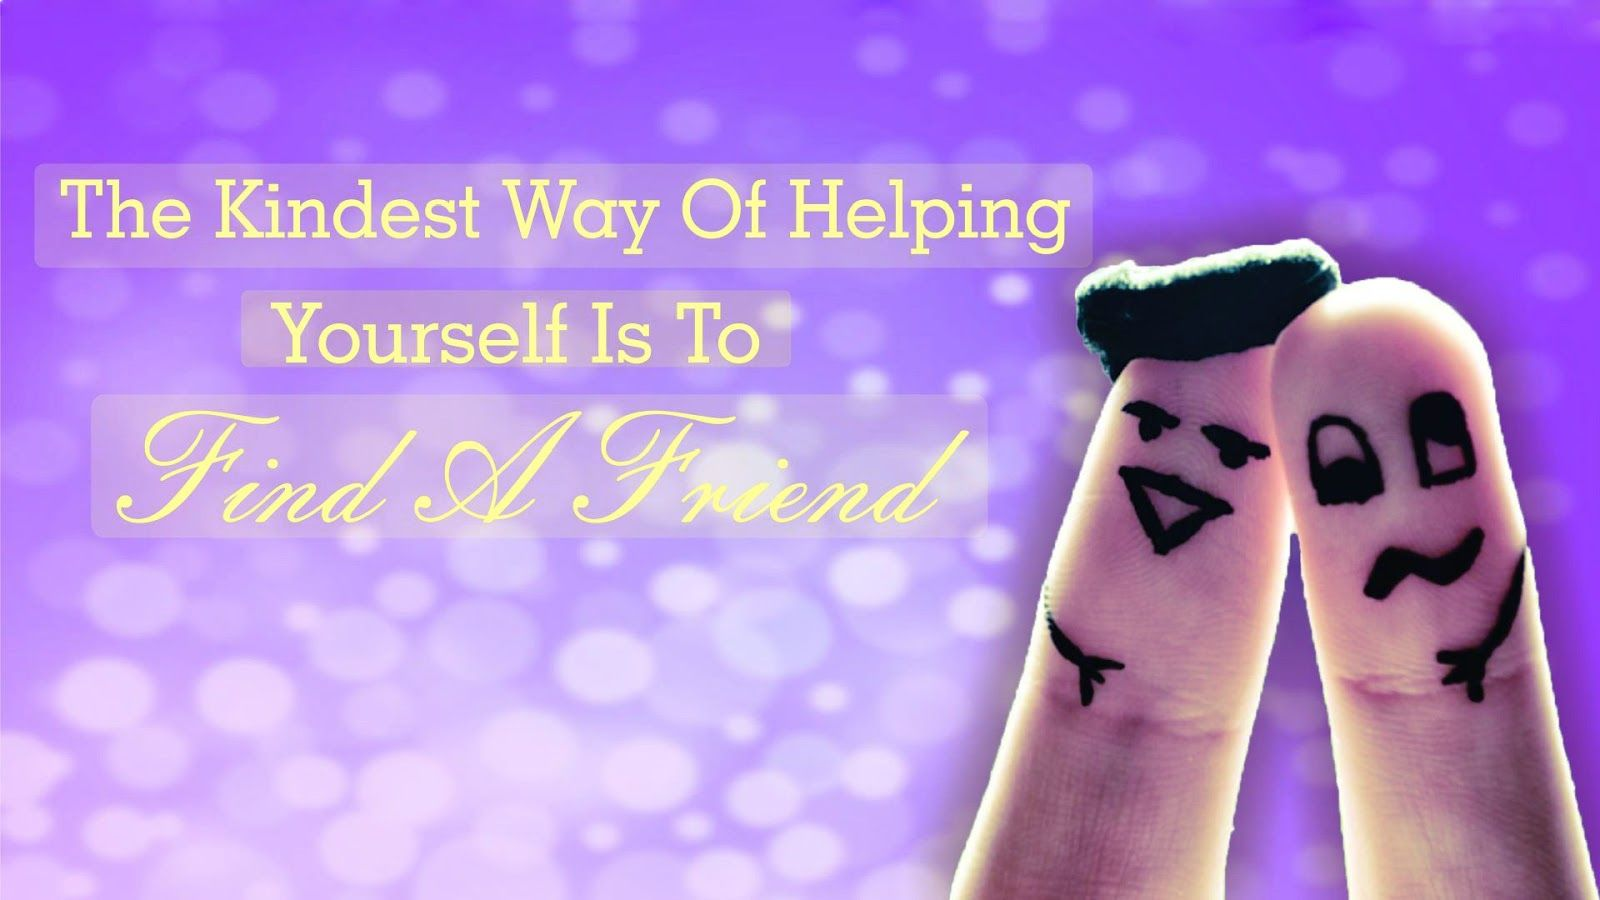 Wallpaper download love and friendship - Friendship Day Wallpapers Happy Friendship Day Pinterest Friendship Wallpaper And Happy Friendship